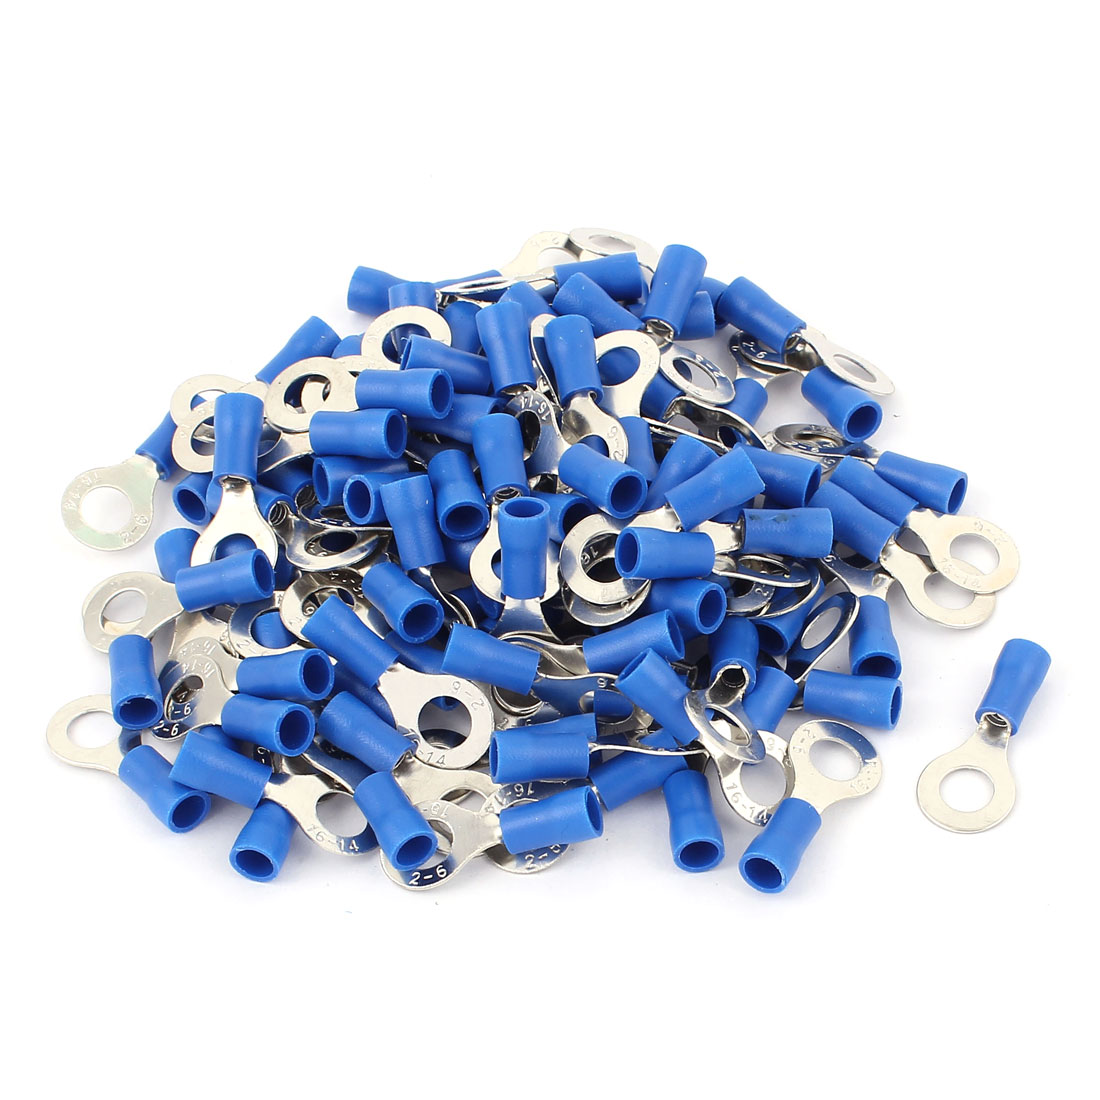 120pcs Cable Connector Pre-Insulated Ring Terminal RV2-6 for AWG 16-14 Wire